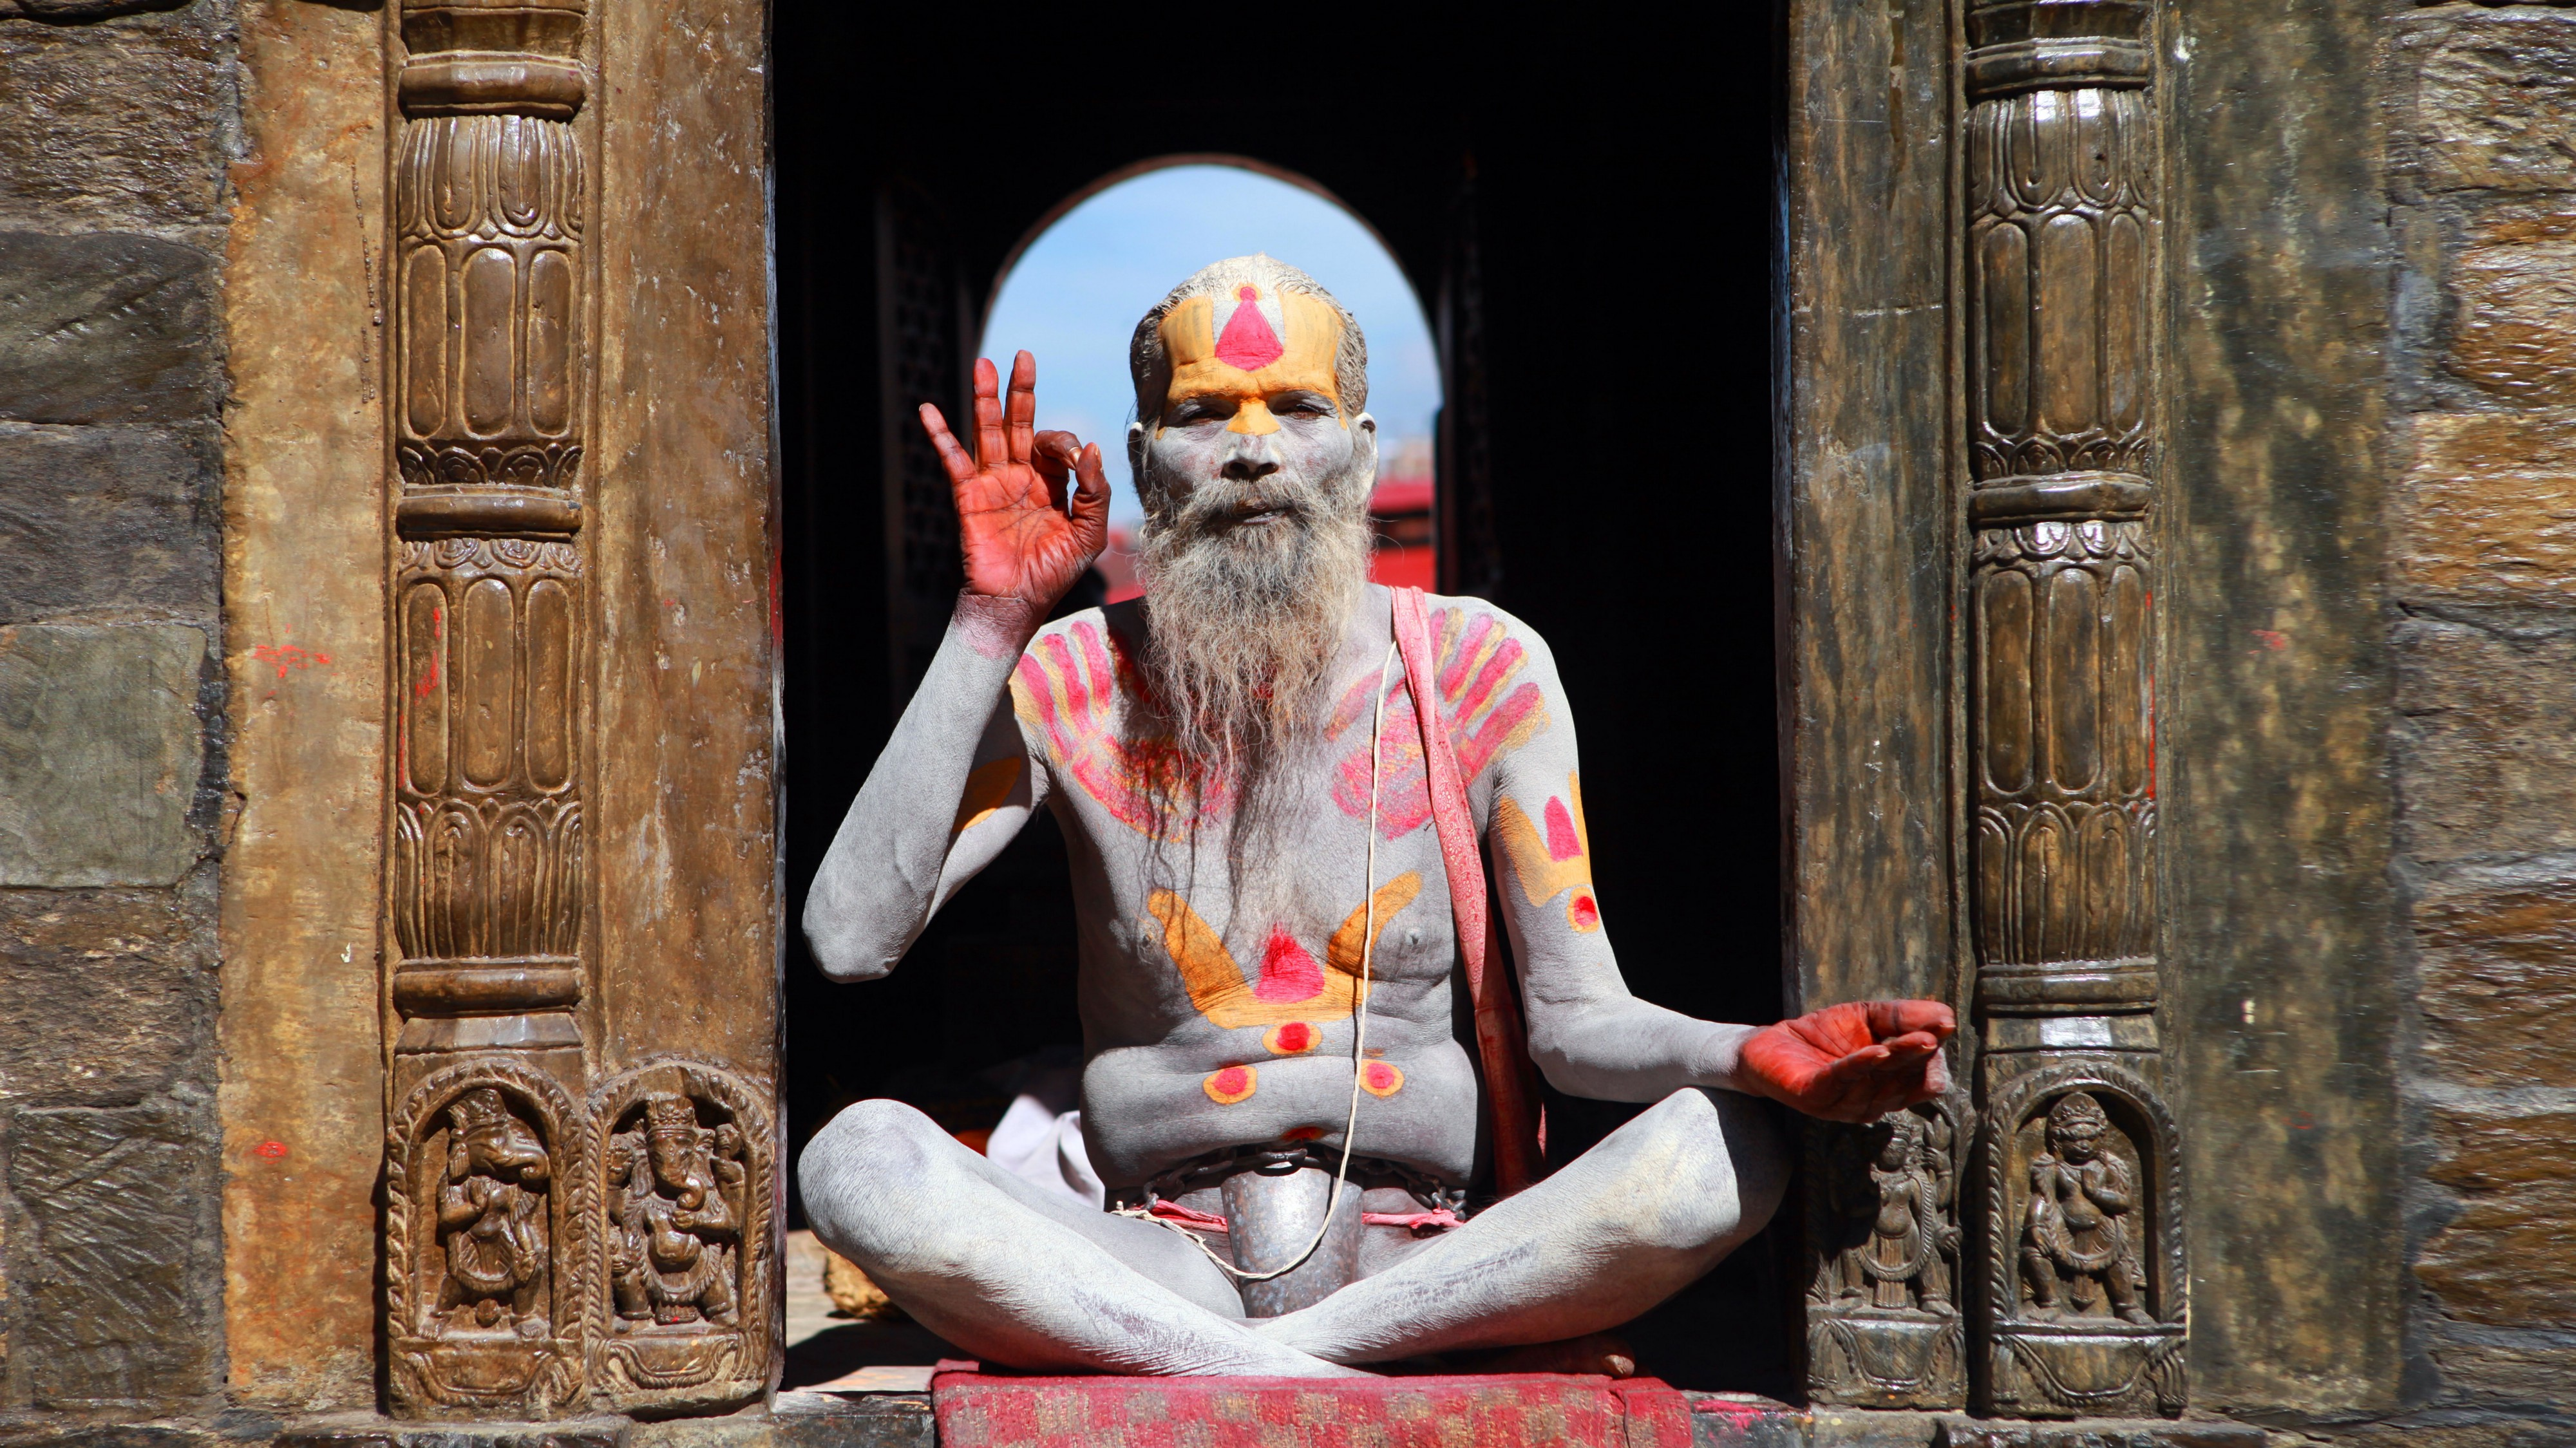 Indian meditation guru sitting cross-legged and covered in body paint